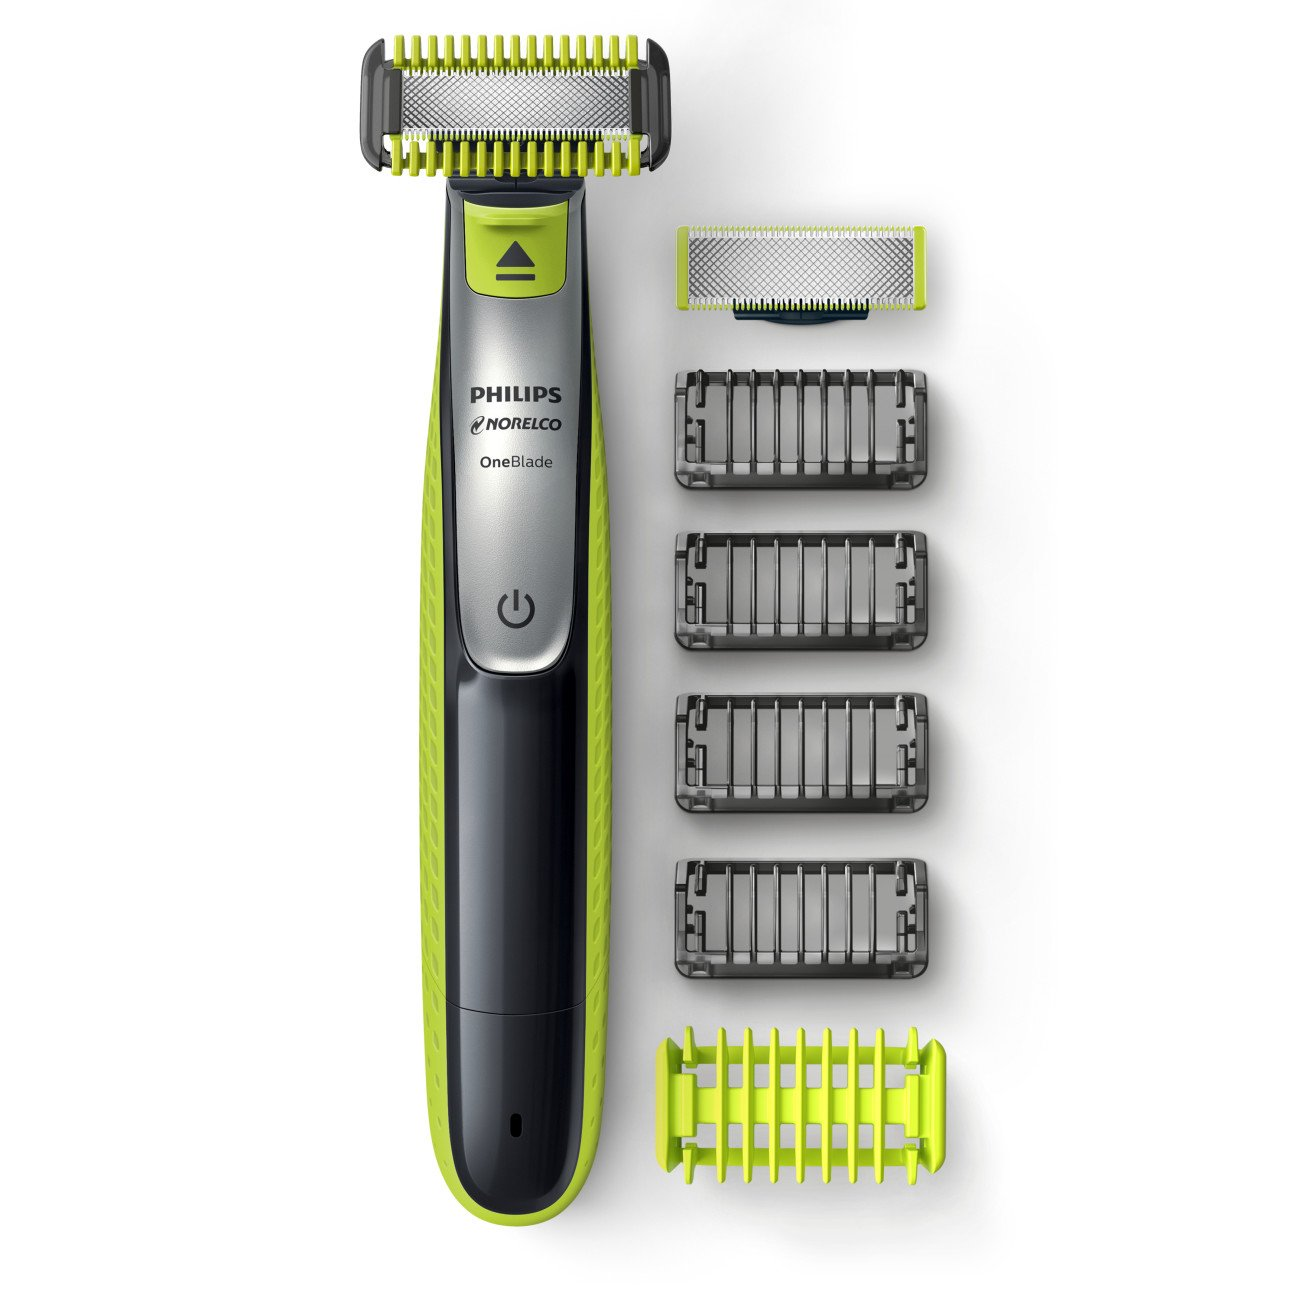 Philips Norelco OneBlade Face + Body hybrid electric trimmer and shaver, QP2630/70 by Philips Norelco